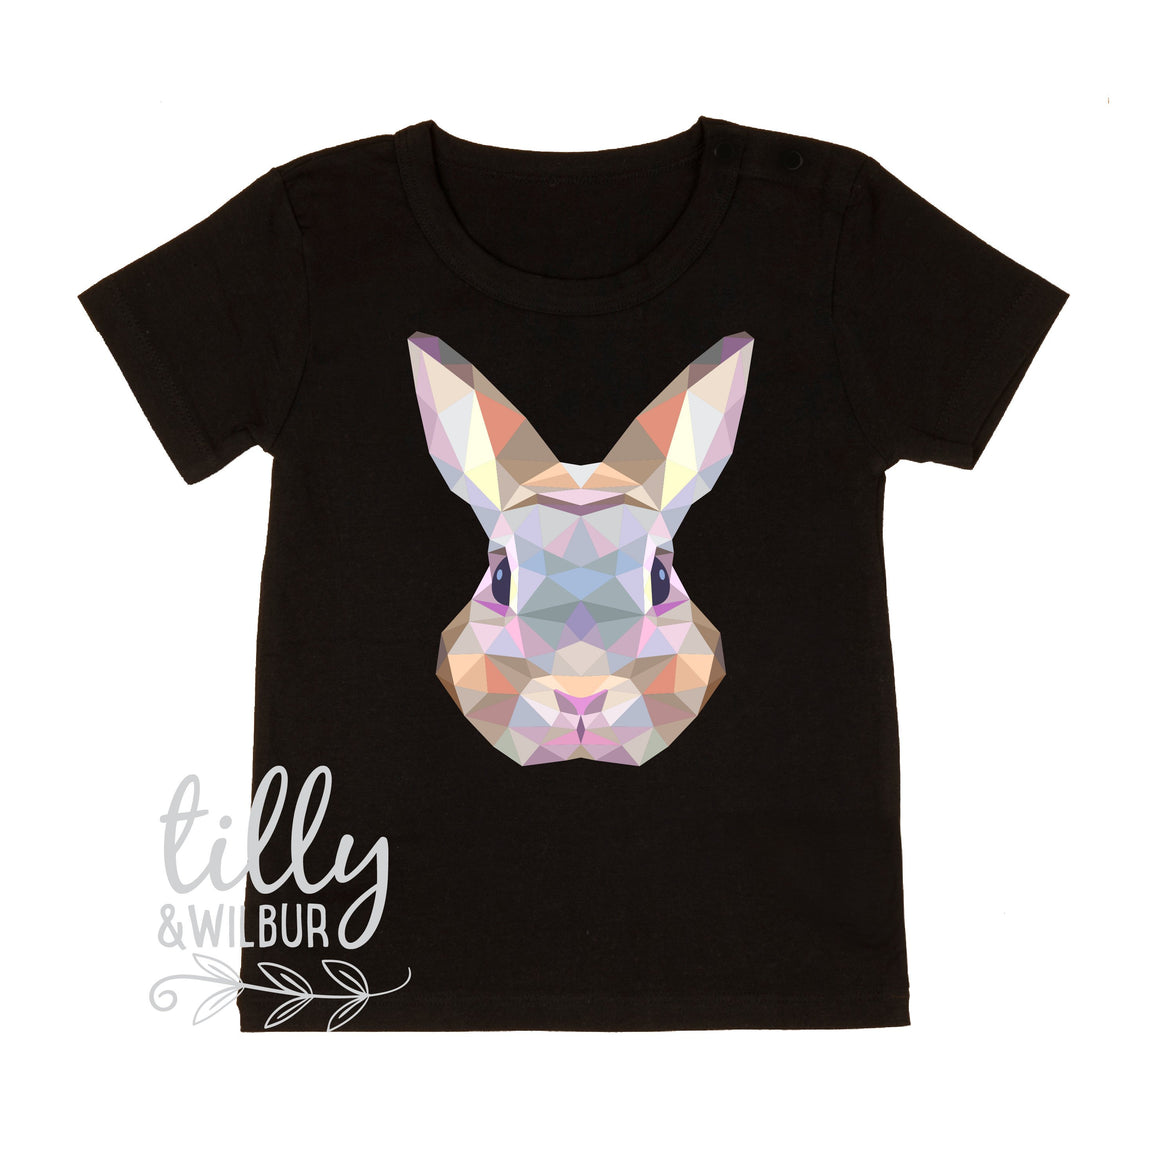 Rabbit Easter T-Shirt For Boys, Geometric Rabbit Shirt, Easter T-Shirt, Boys Easter Gift, Boys Easter Shirt, Hip Hop Boys Easter Clothing